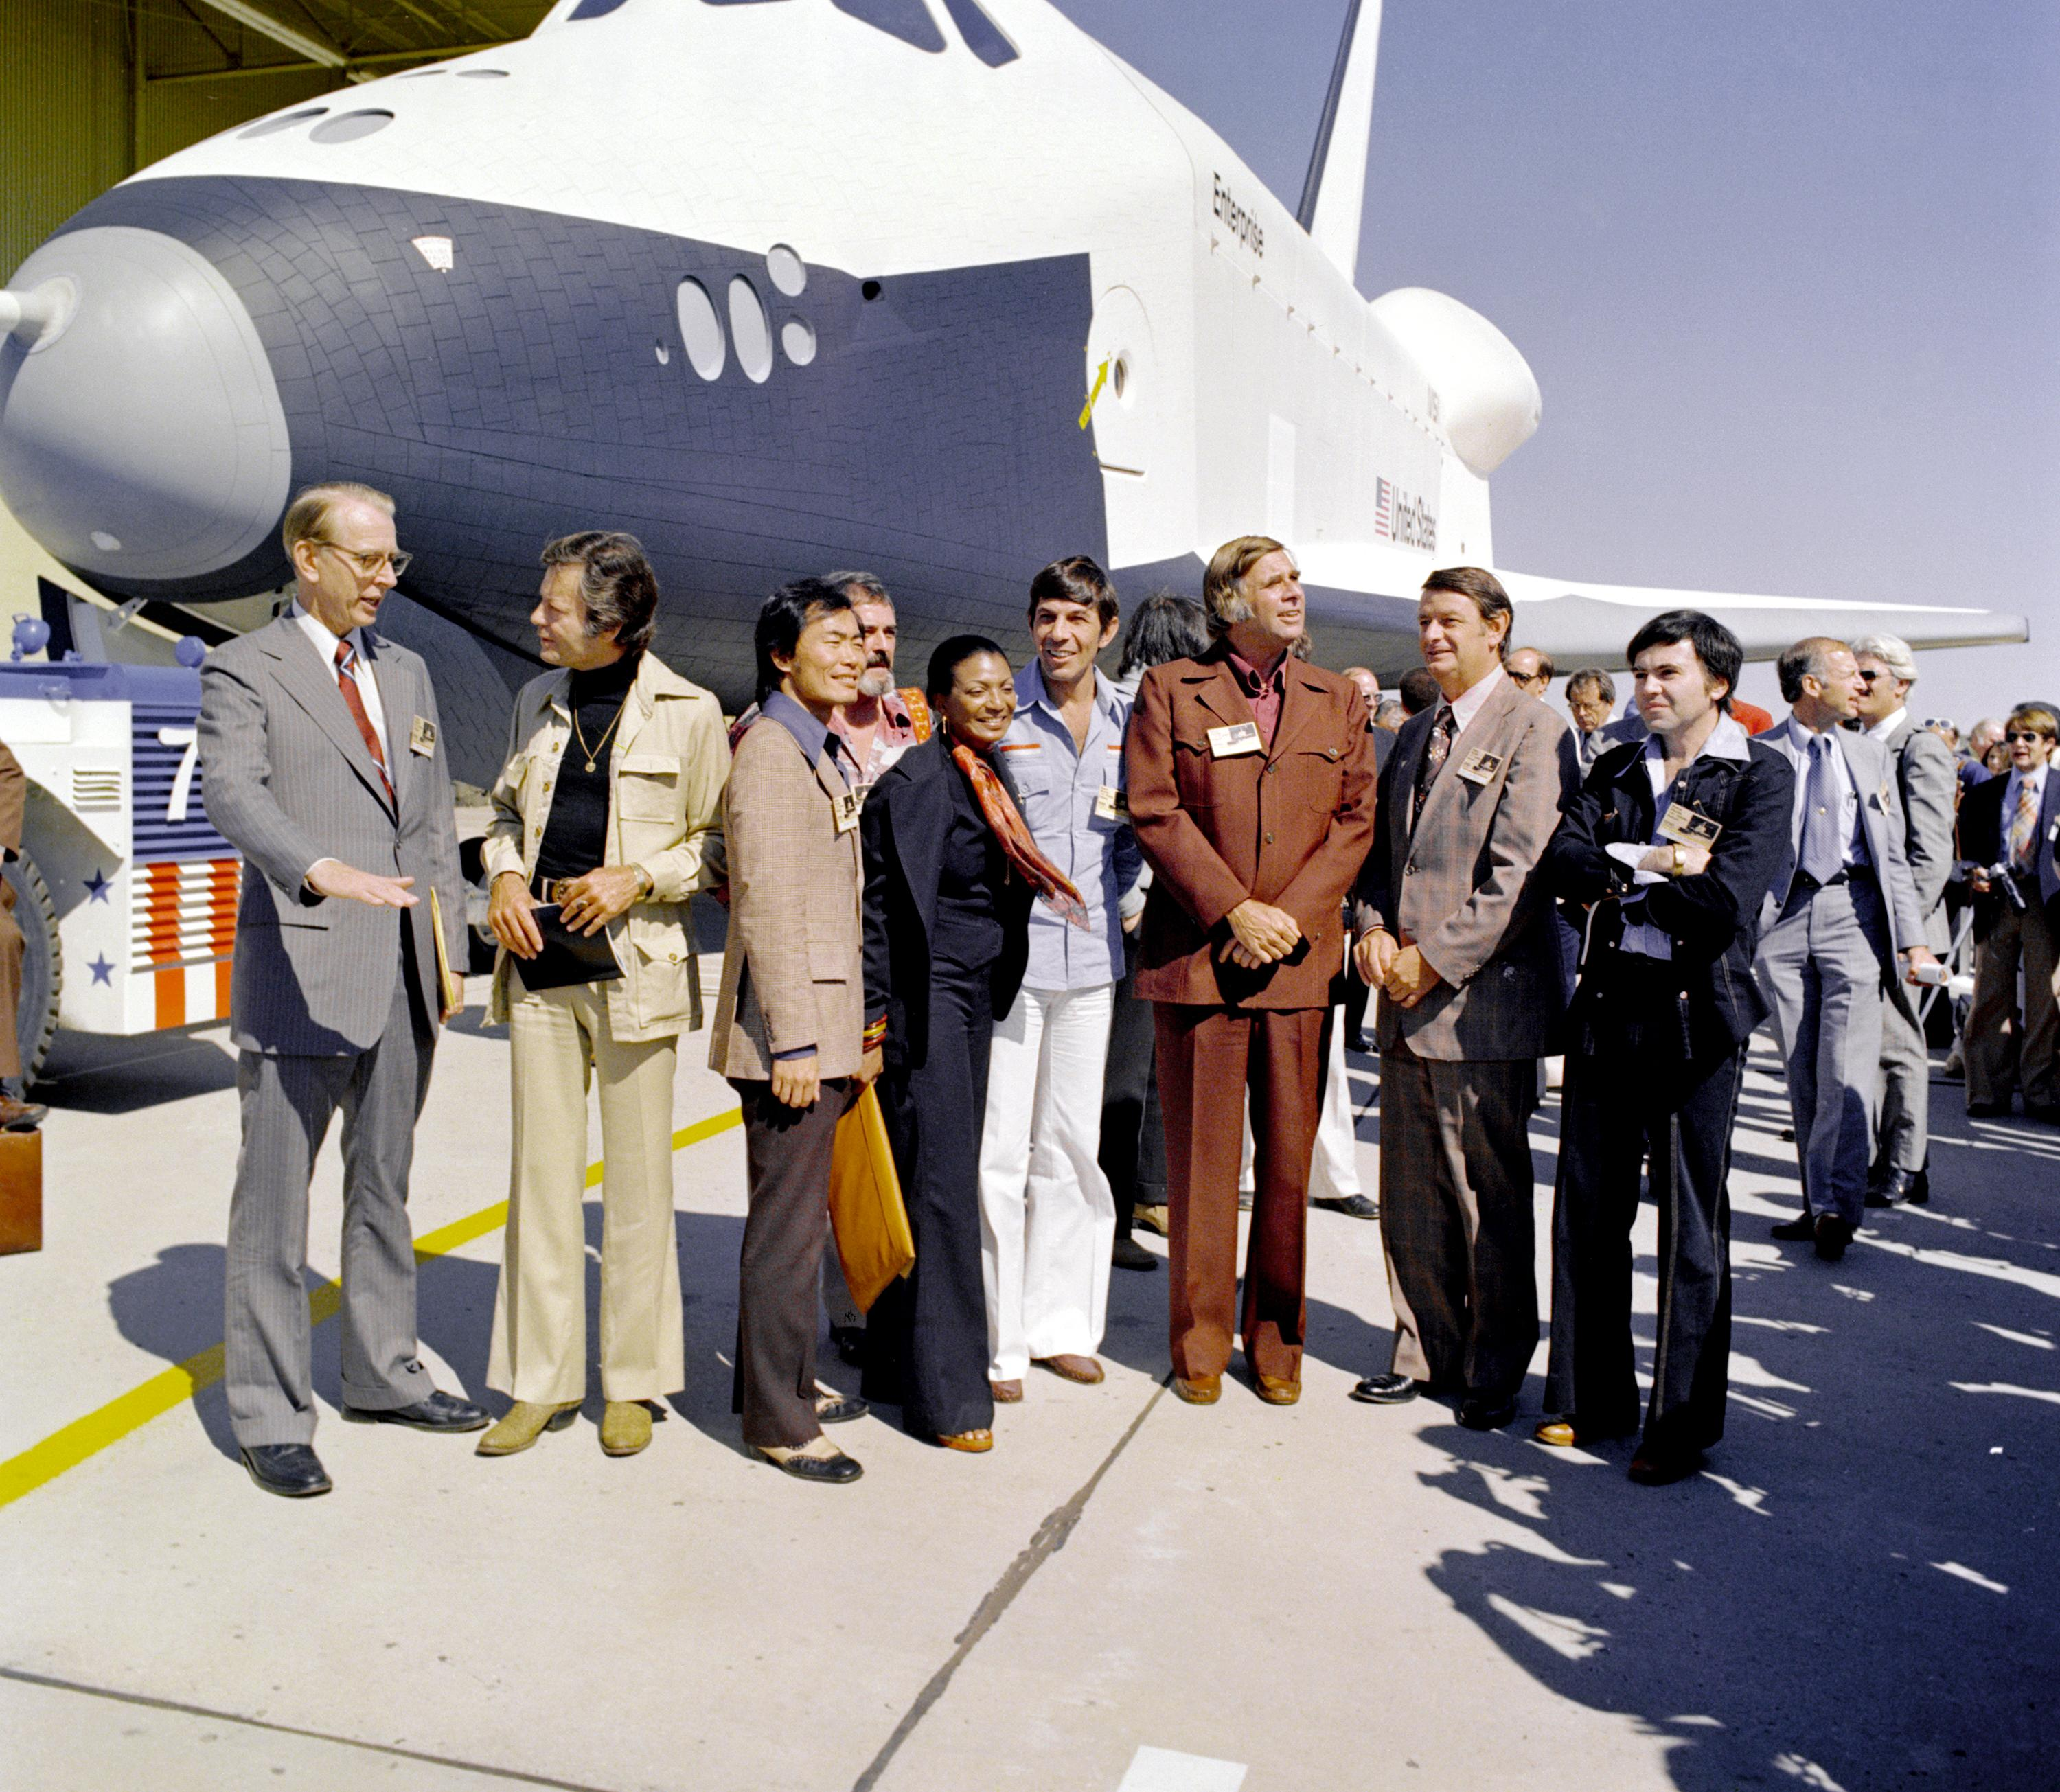 Leonard Nimoy, and the cast from Star Trek at the Space Shuttle Enterprise